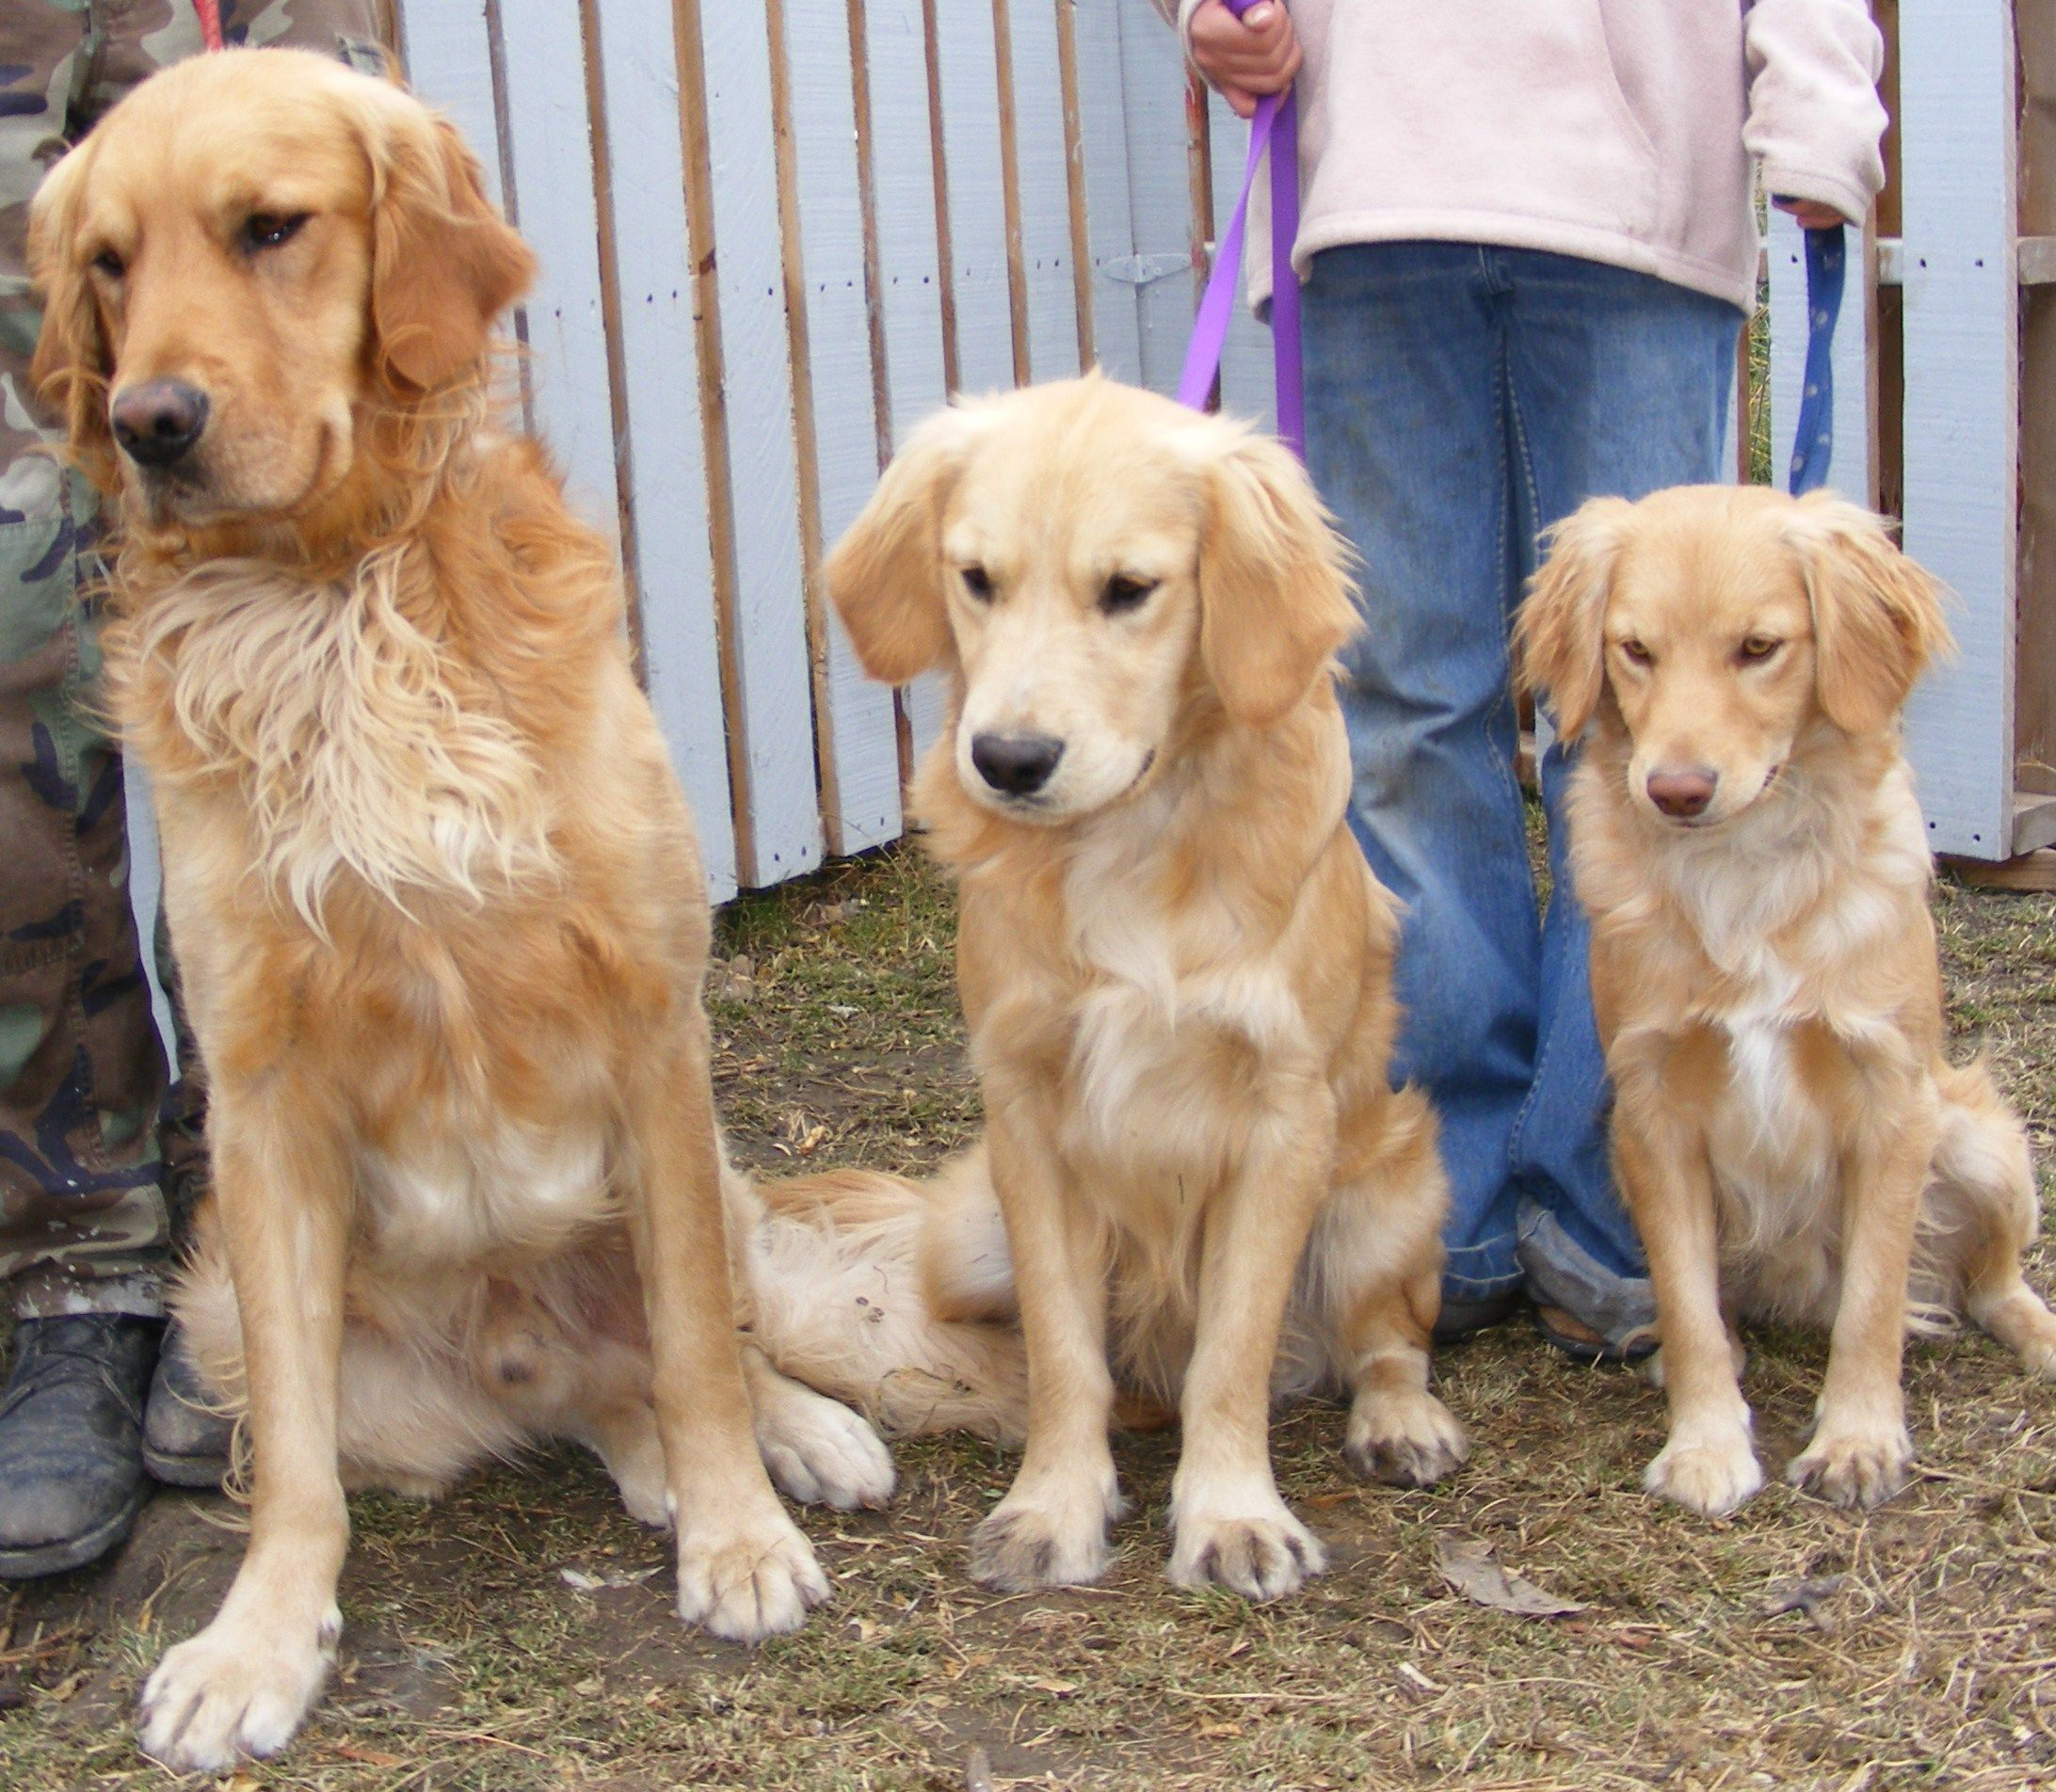 I want the MINI golden retriever to the right a